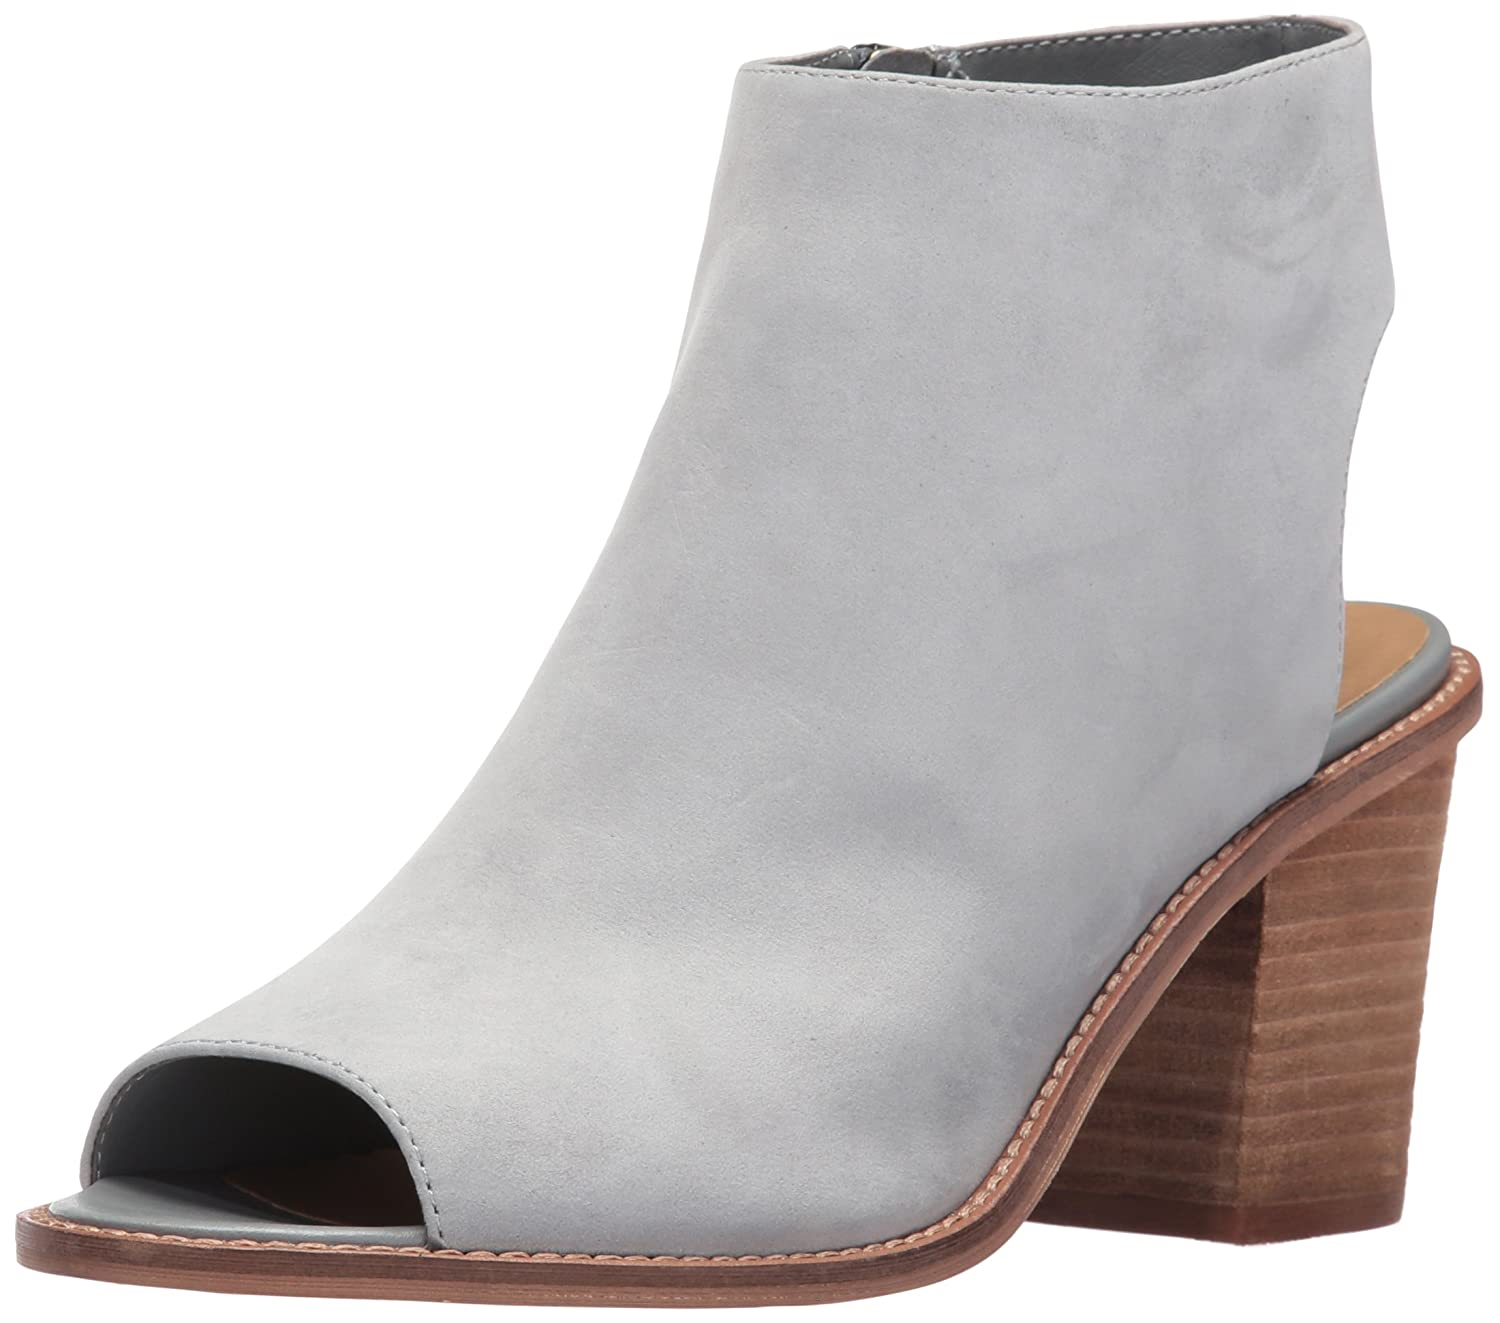 Chinese Laundry Women's Calvin Ankle Bootie B01LW09QOH 8 B(M) US|Chambray Leather